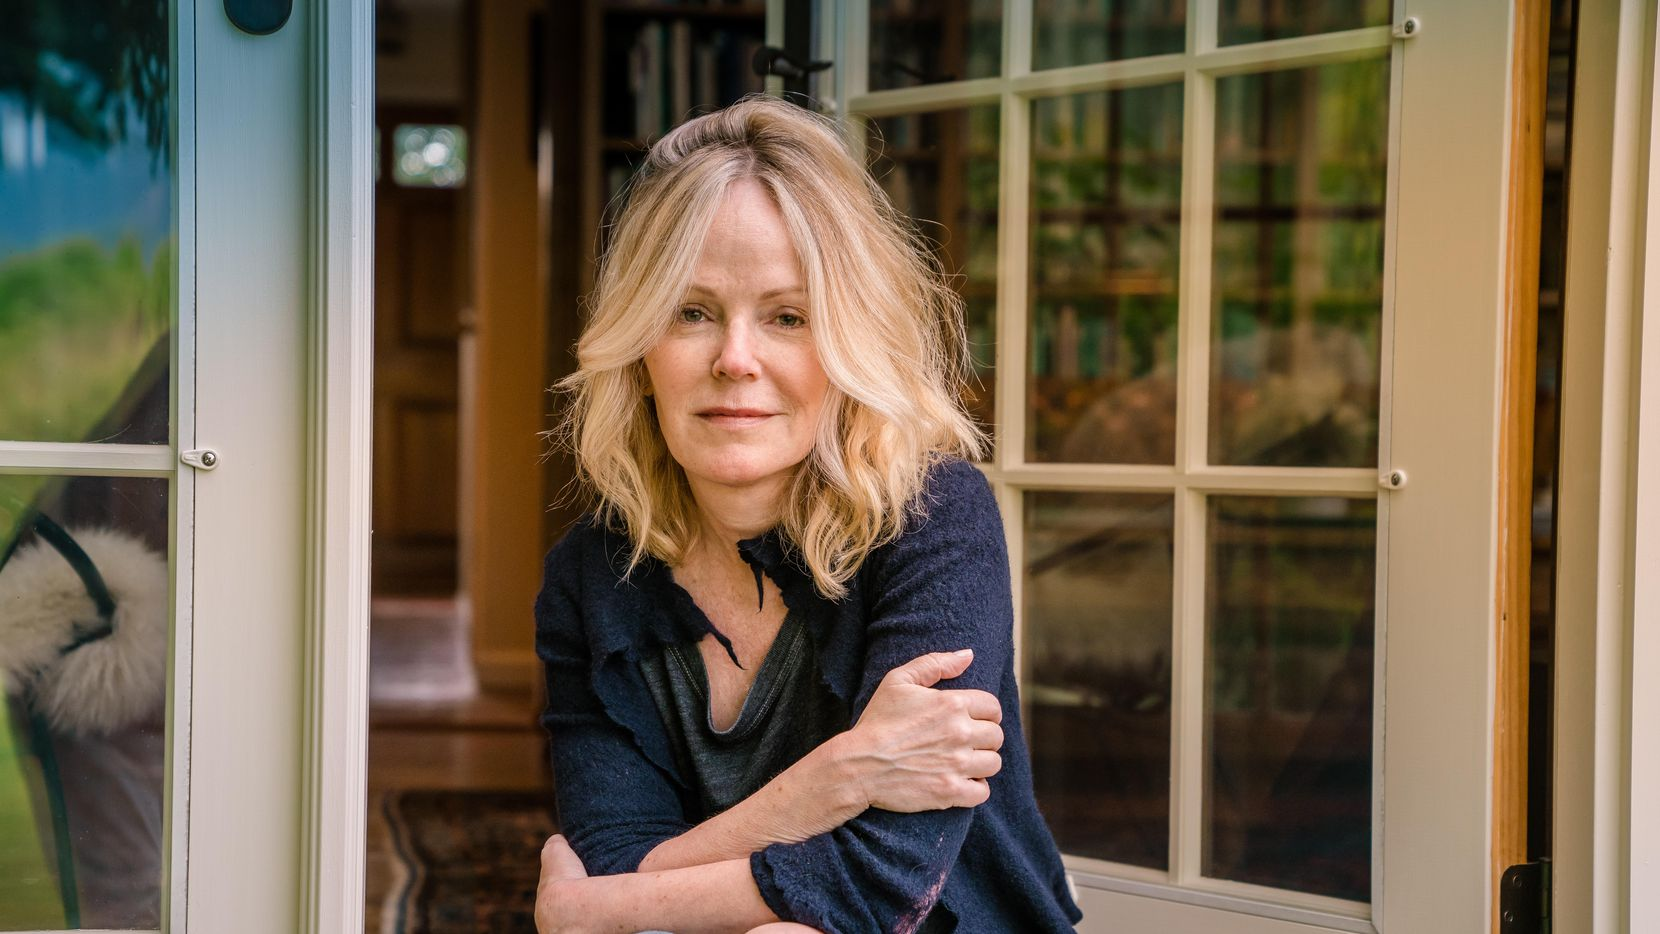 Dani Shapiro learned through a DNA test that she was not her father's biological daughter. She wrote about the revelation — and her quest for answers — in her new memoir, Inheritance.